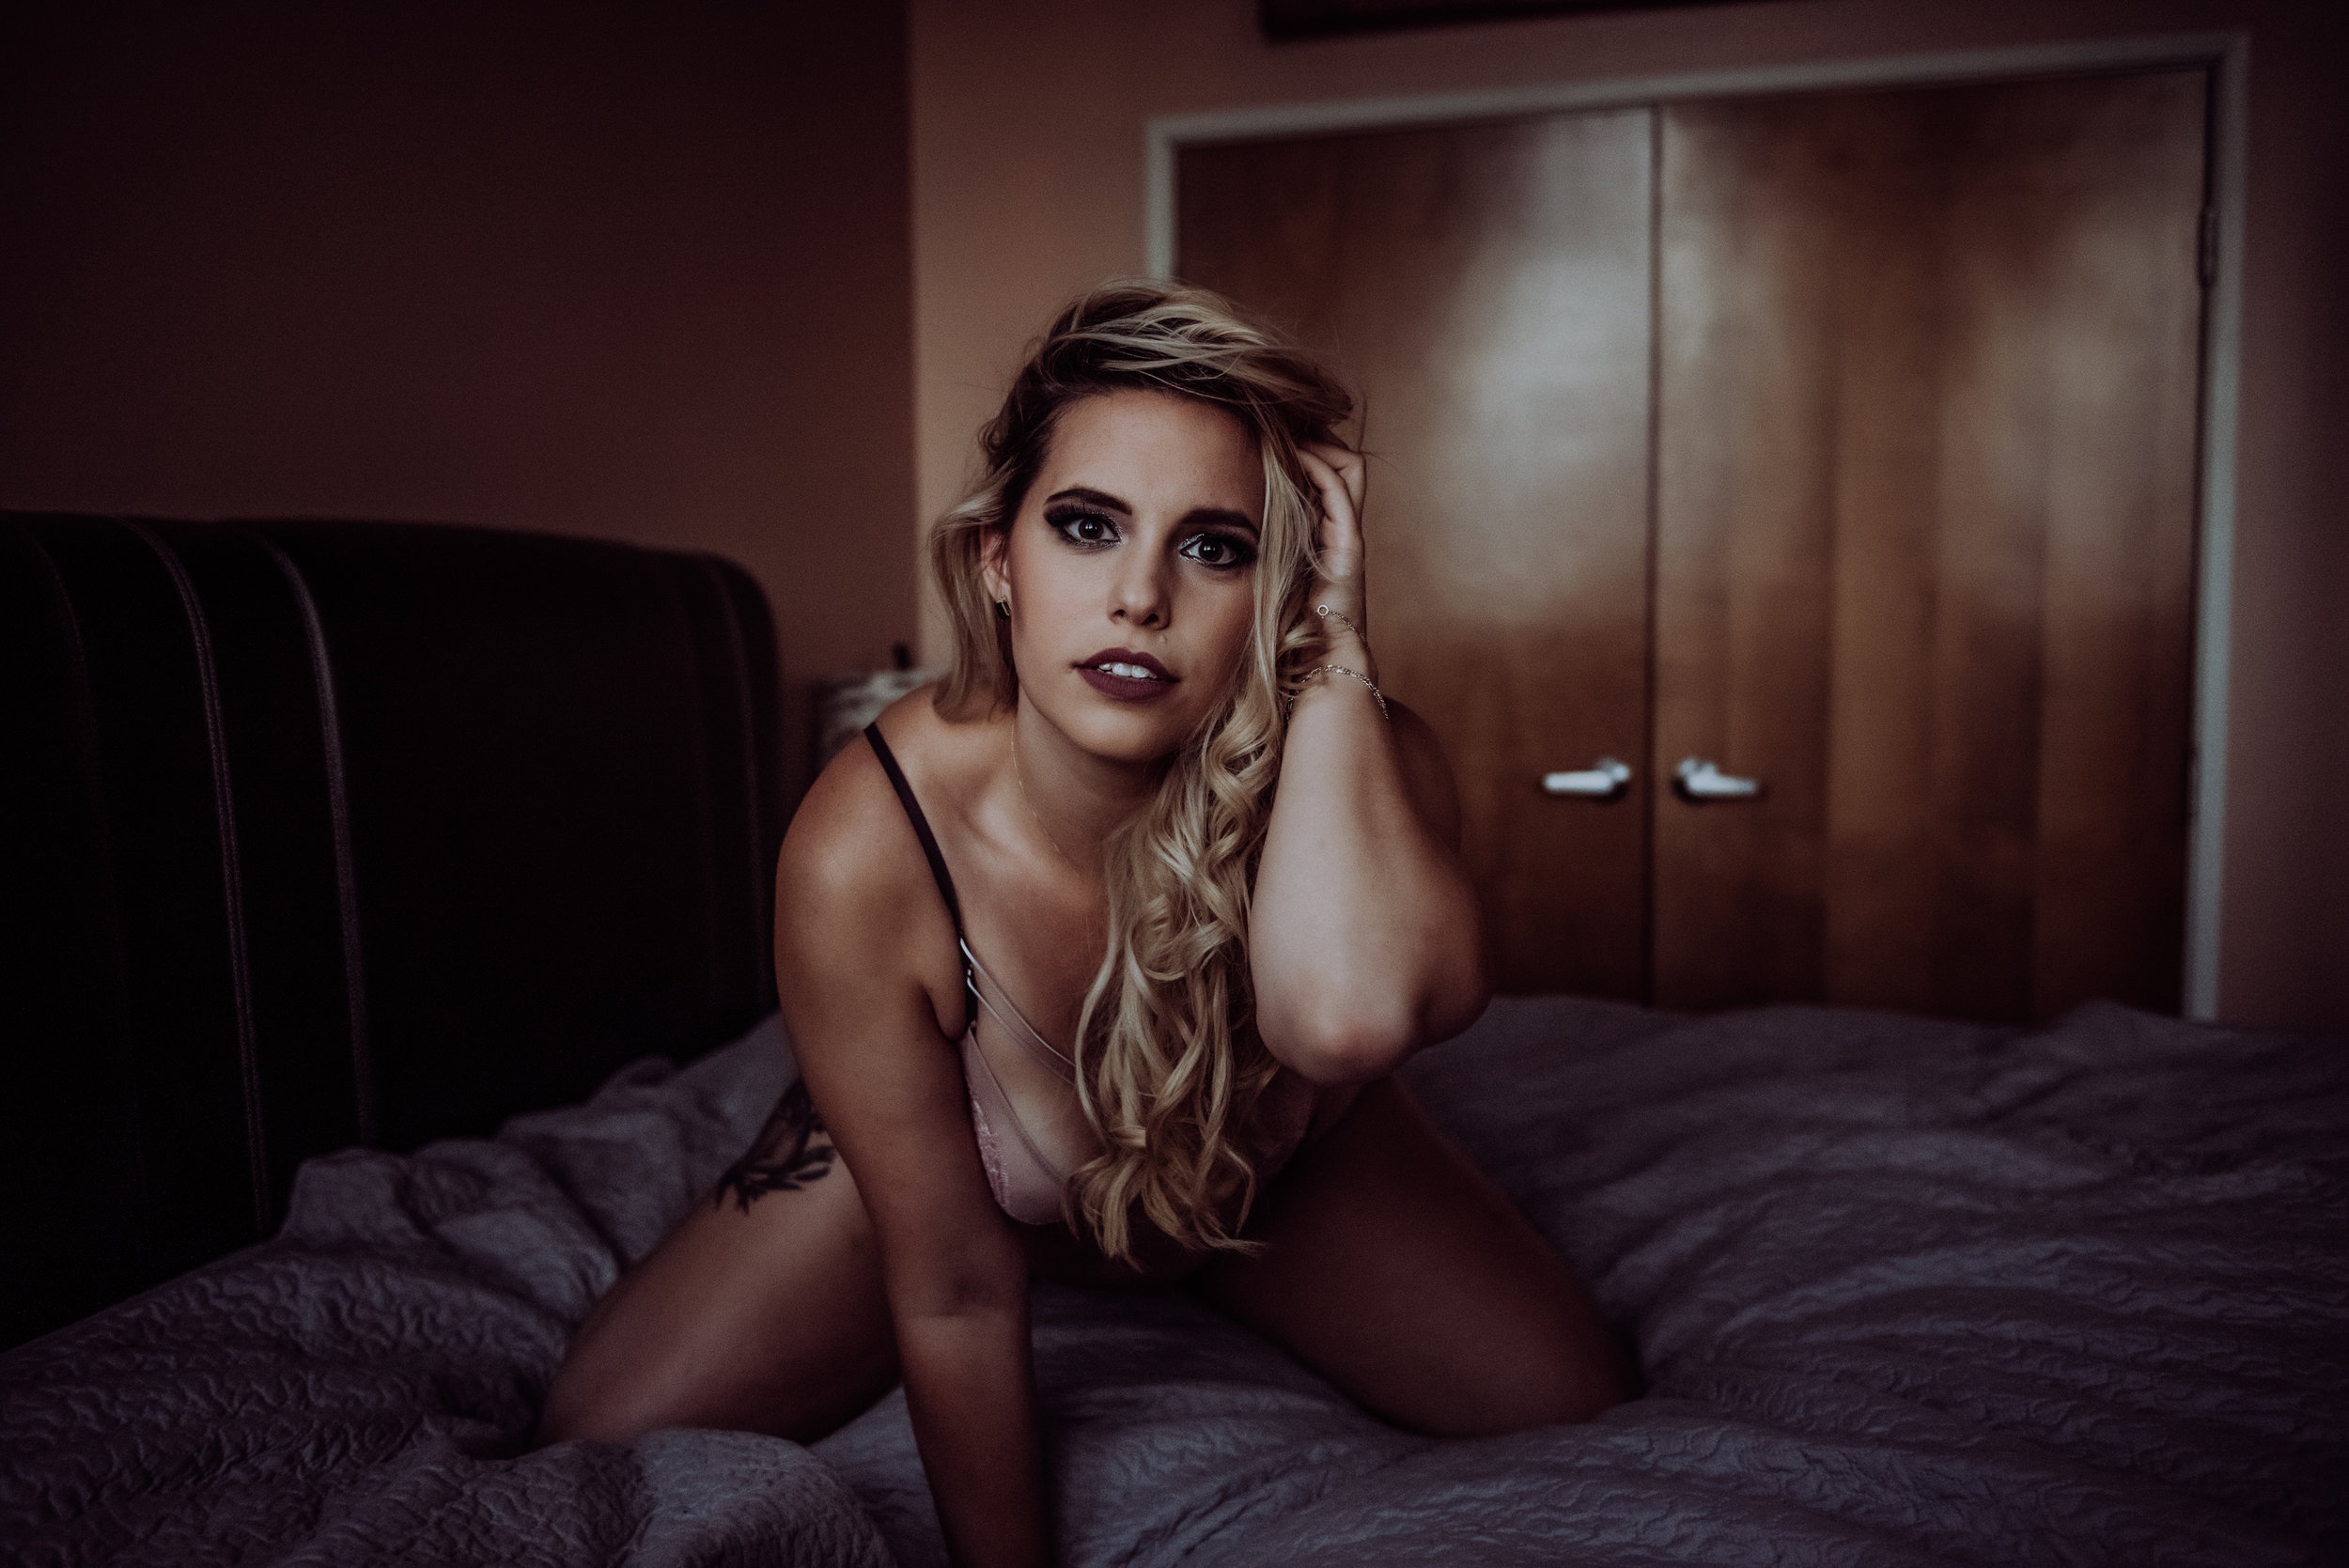 Blonde with hand in hair sexy kneeling on purple sheets  boudoir photography new york city bedroom